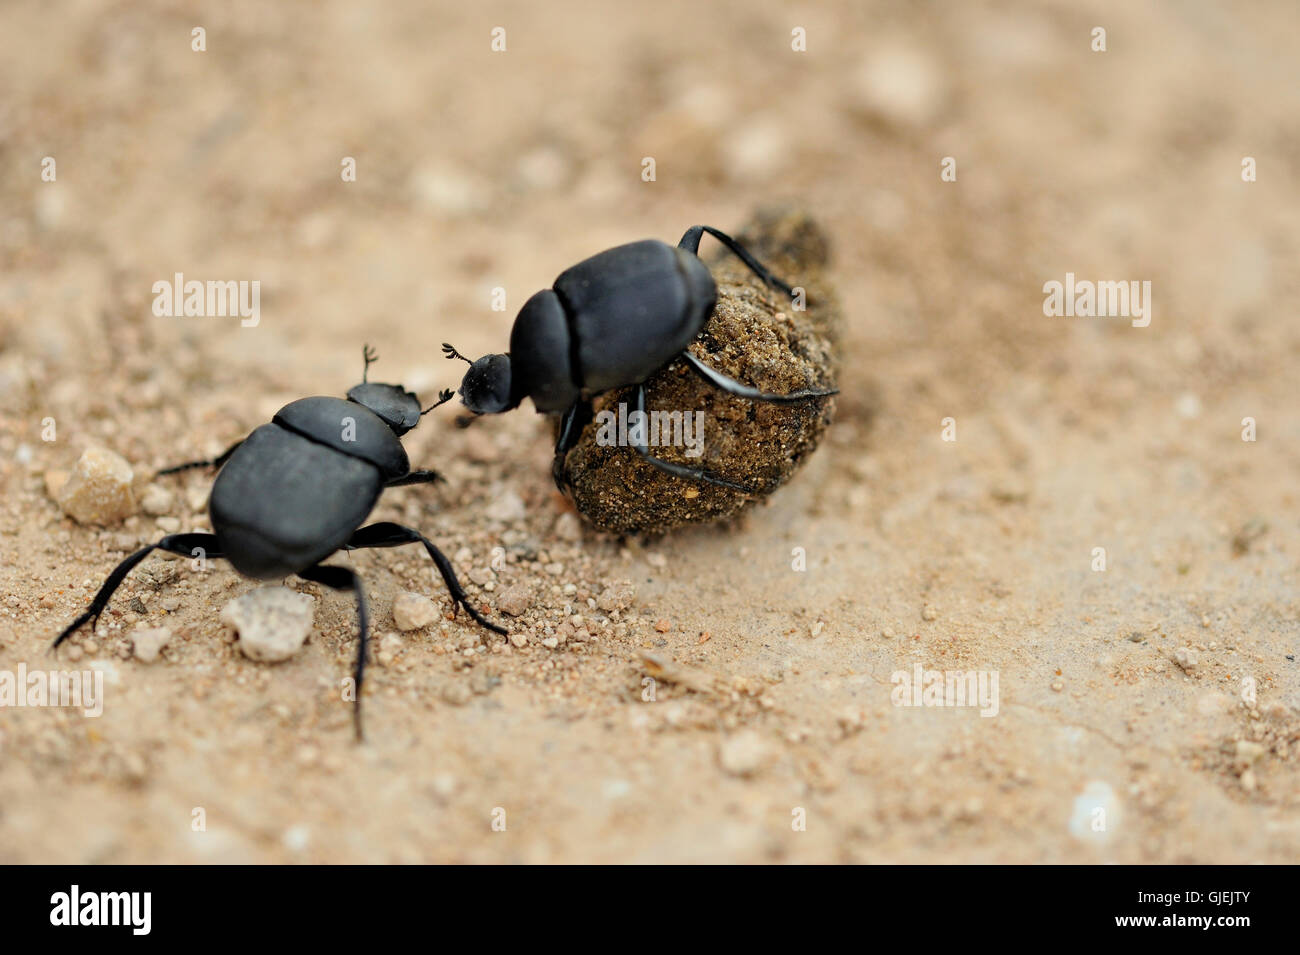 Dung beetle rolling a ball of domestic dog dung, Rio Grande City, Texas, USA - Stock Image